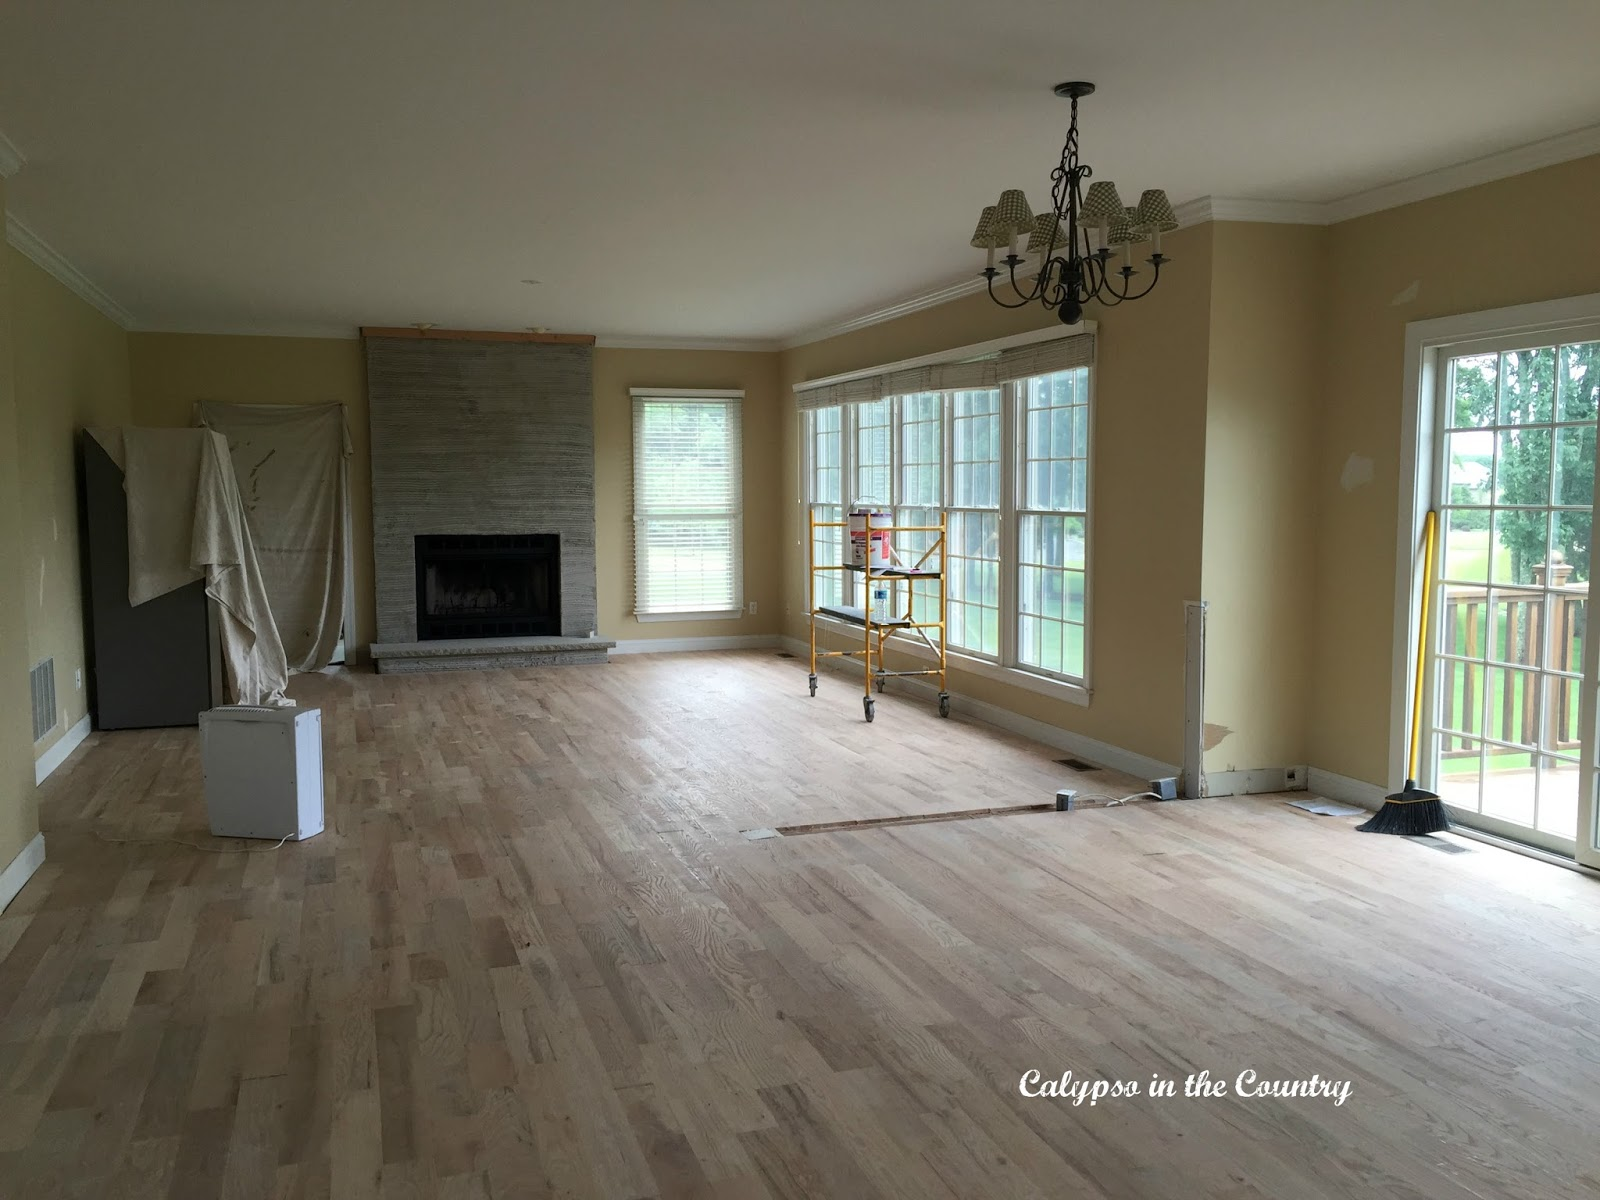 Family Room and fireplace renovation